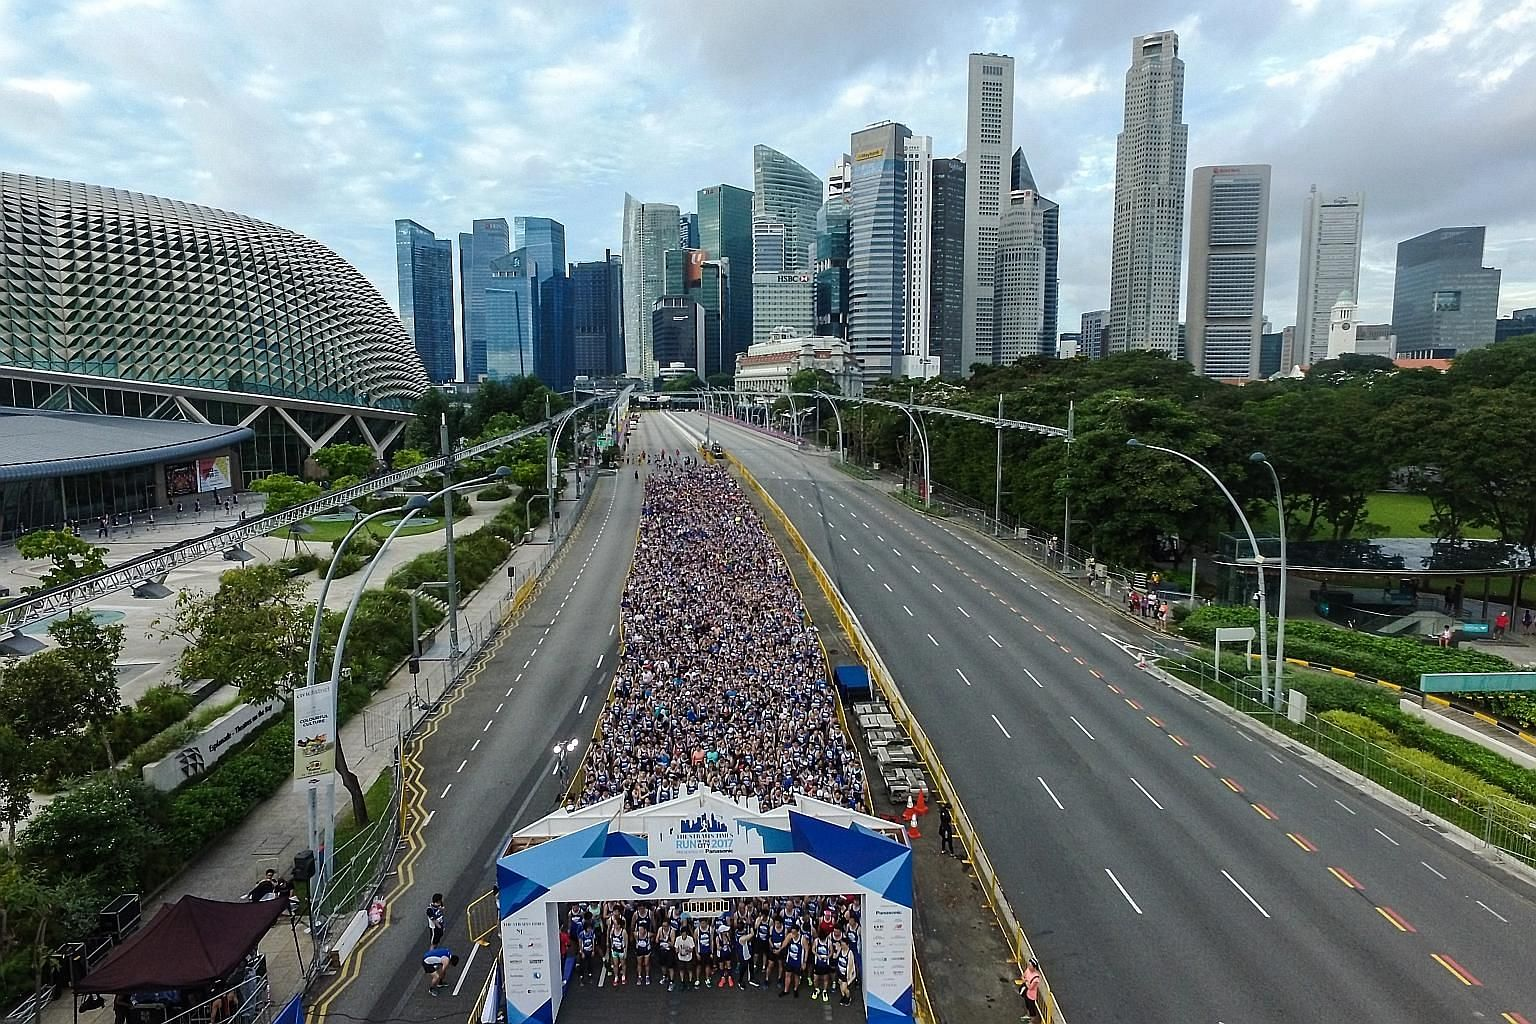 Runners of the 5km race on Esplanade Drive yesterday. This year, the ST Run culminated at the Padang, where a post-race carnival was held.